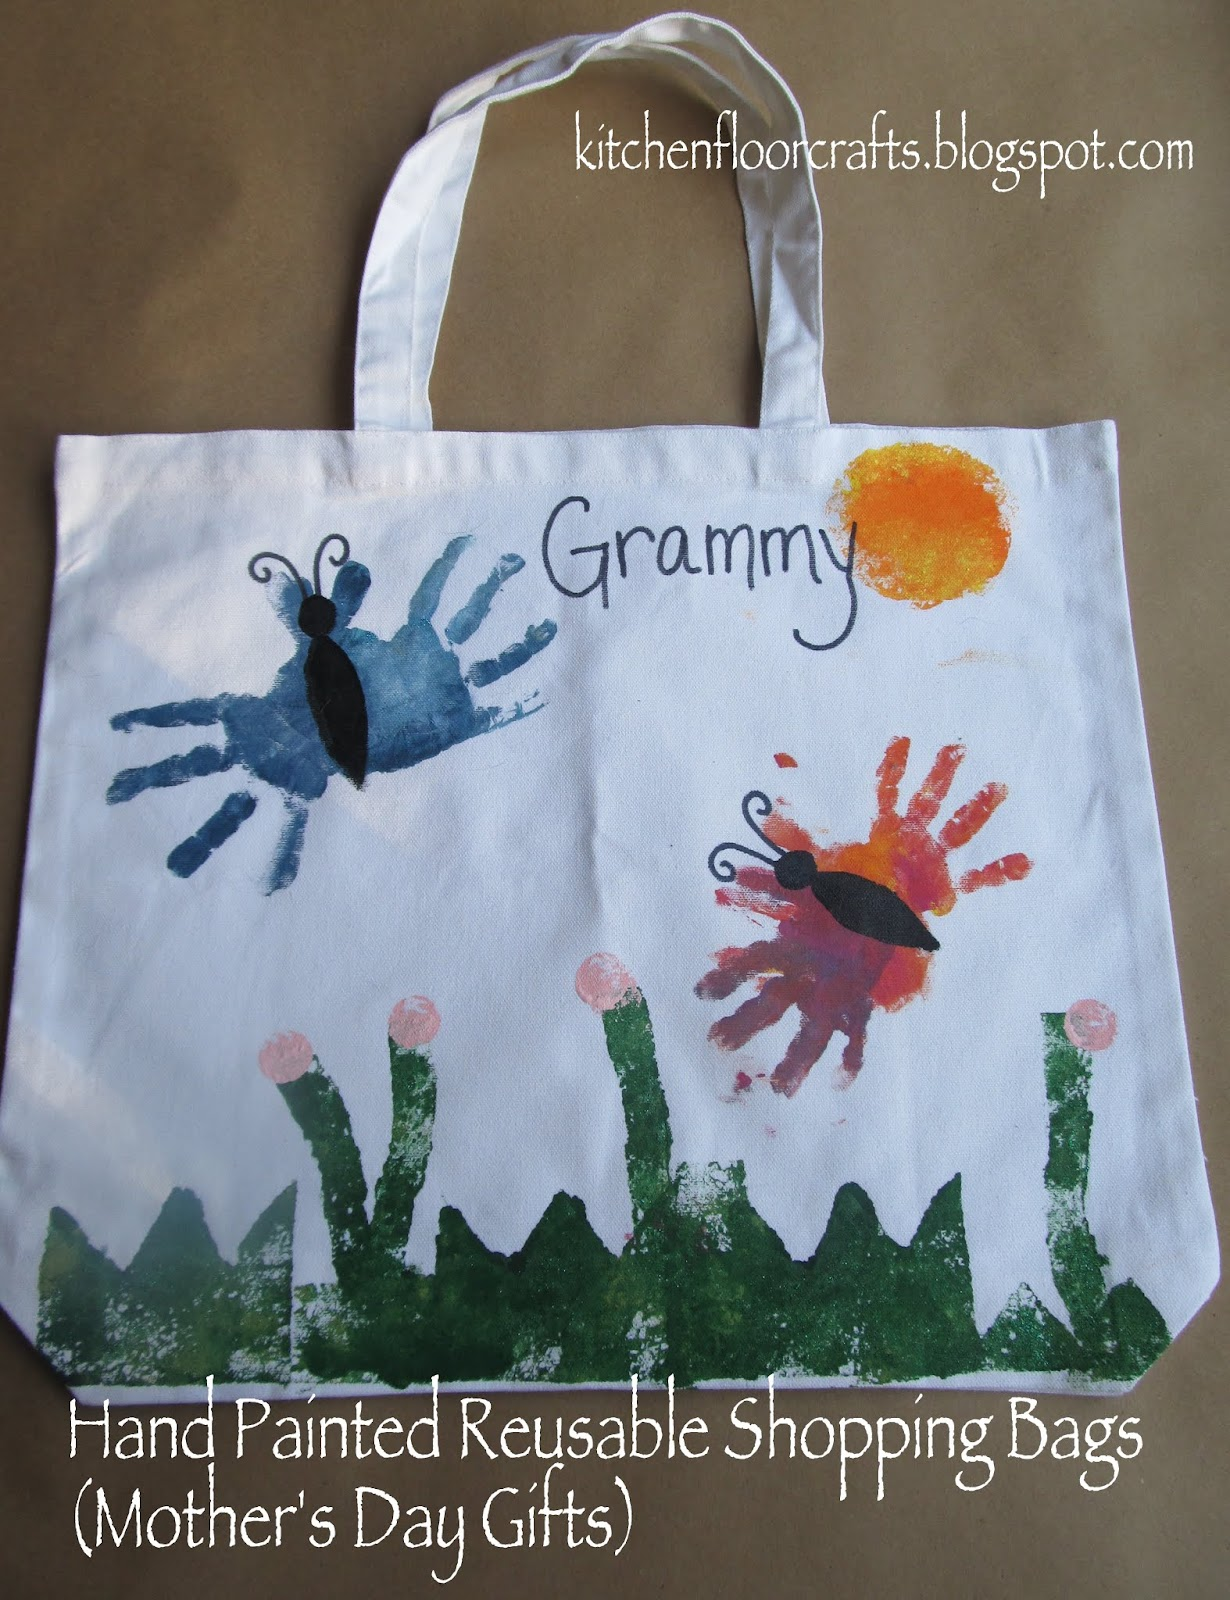 Kitchen Floor Crafts Hand Painted Reusable Shopping Bags